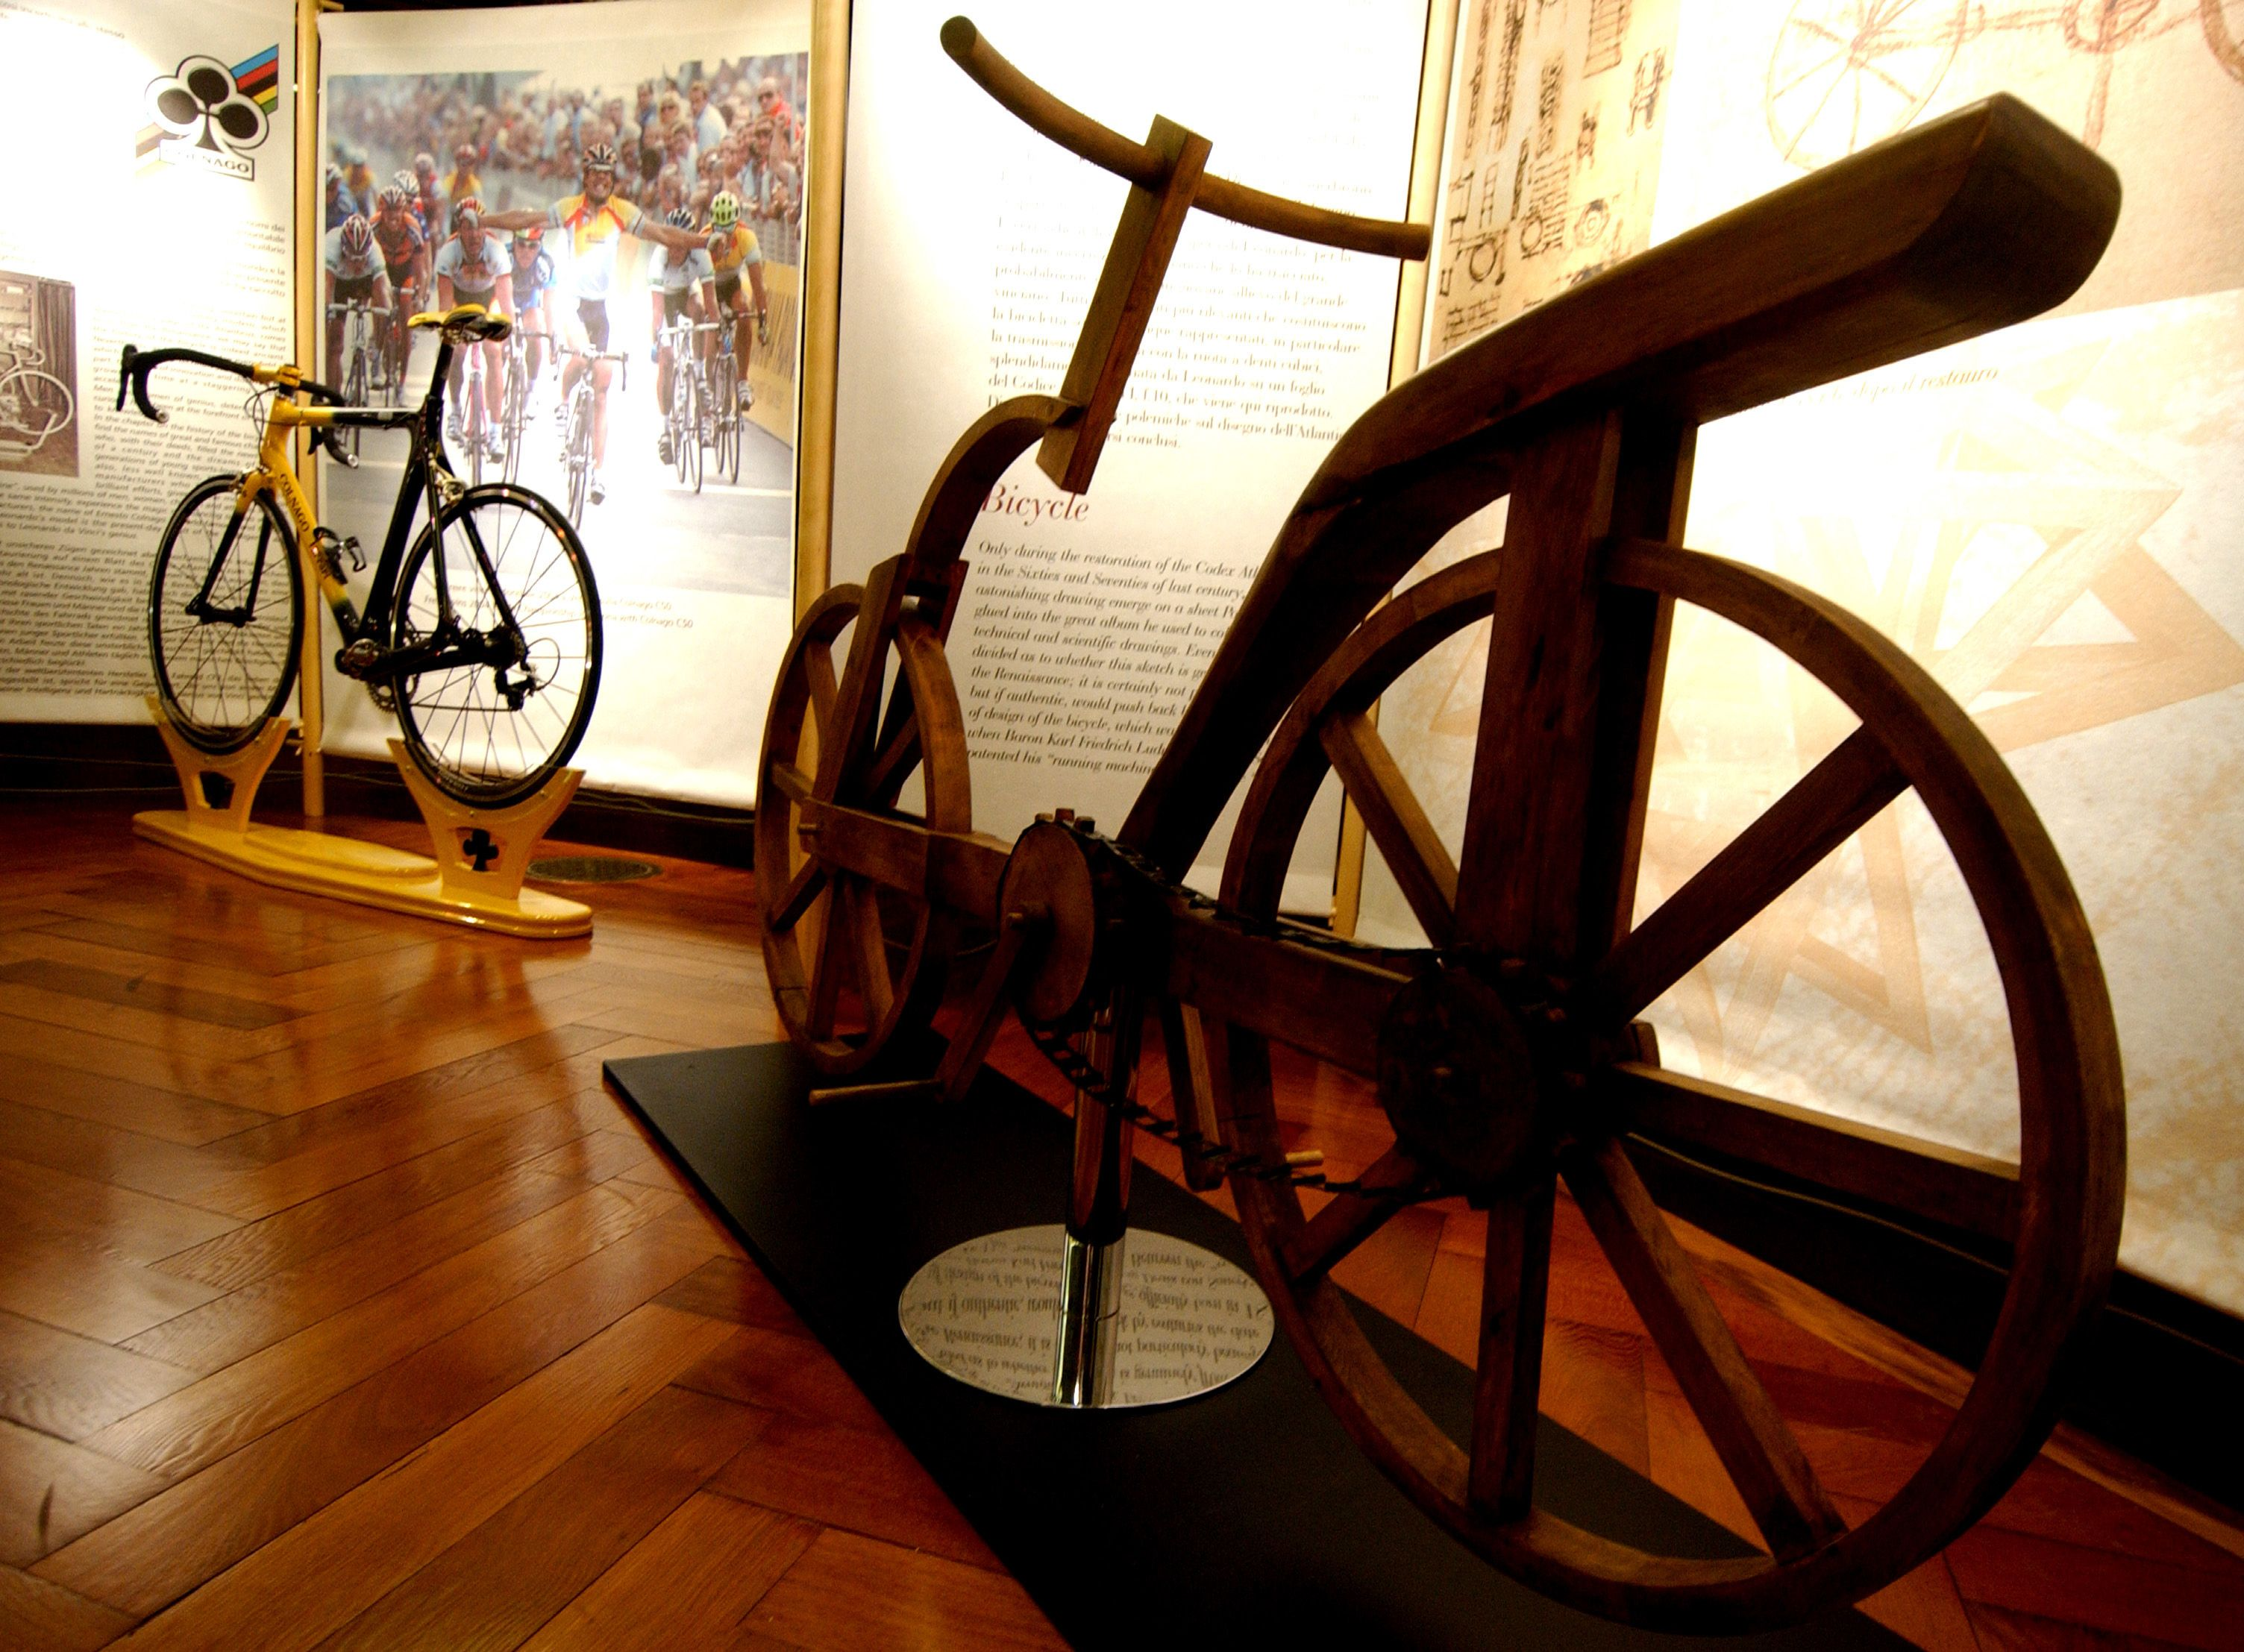 A wood bicycle based on Leonardo da Vinci's Renaissance study project is exhibited as part of the Codex Atlanticus exhibition at the Corsini Palace in Rome.